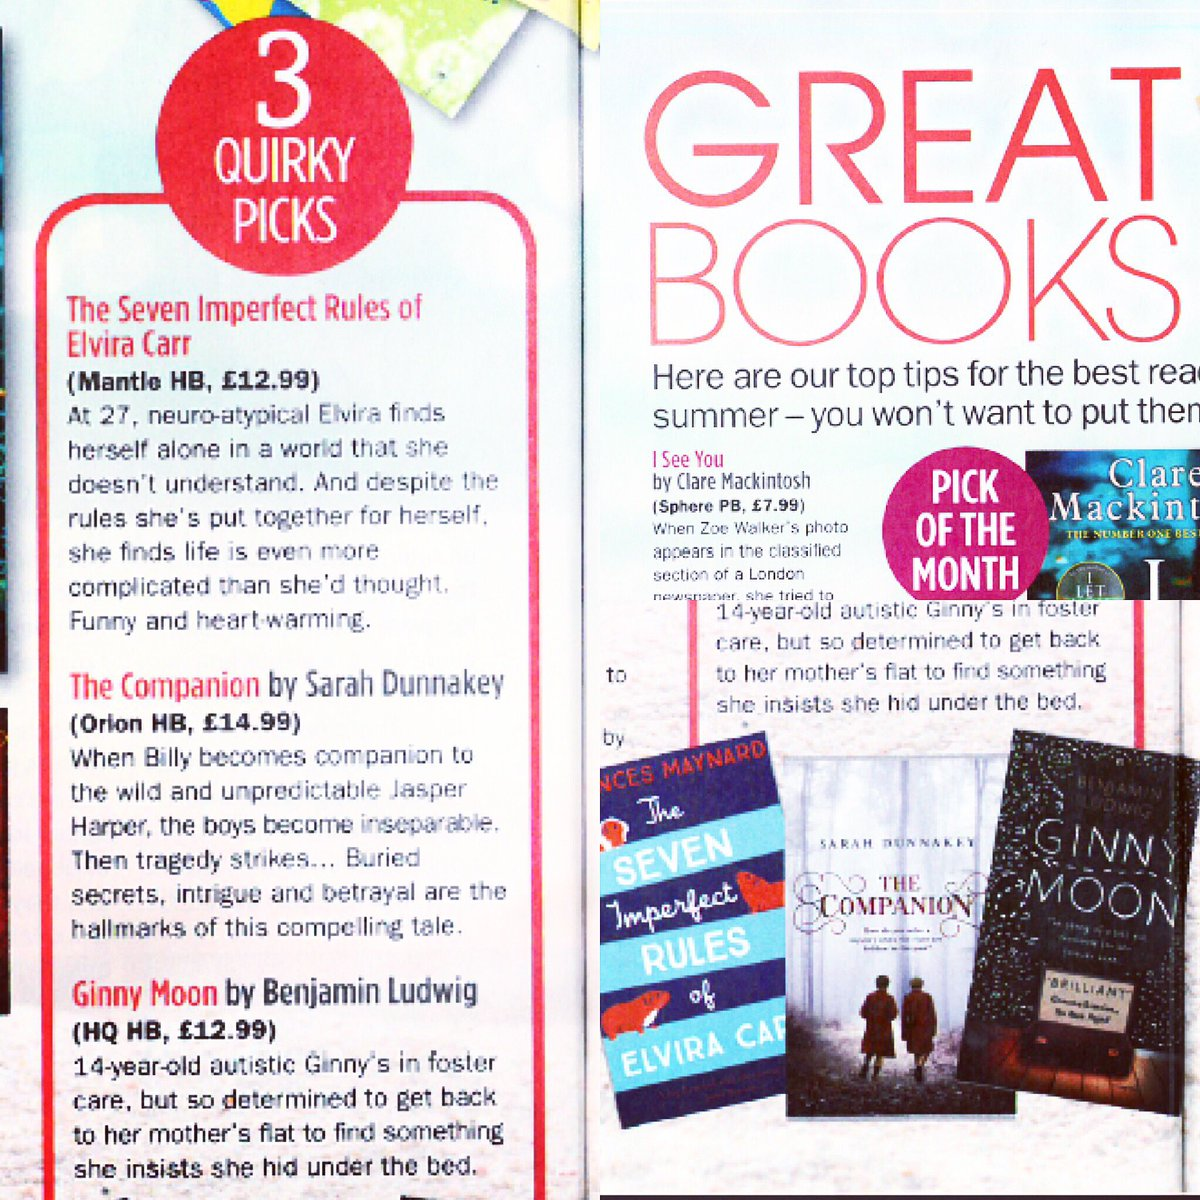 test Twitter Media - RT @Charlo_Murs: Brilliant to see #GinnyMoon by @BILudwig featured in @My_Weekly! @HQstories https://t.co/Ru2hhaOyFV